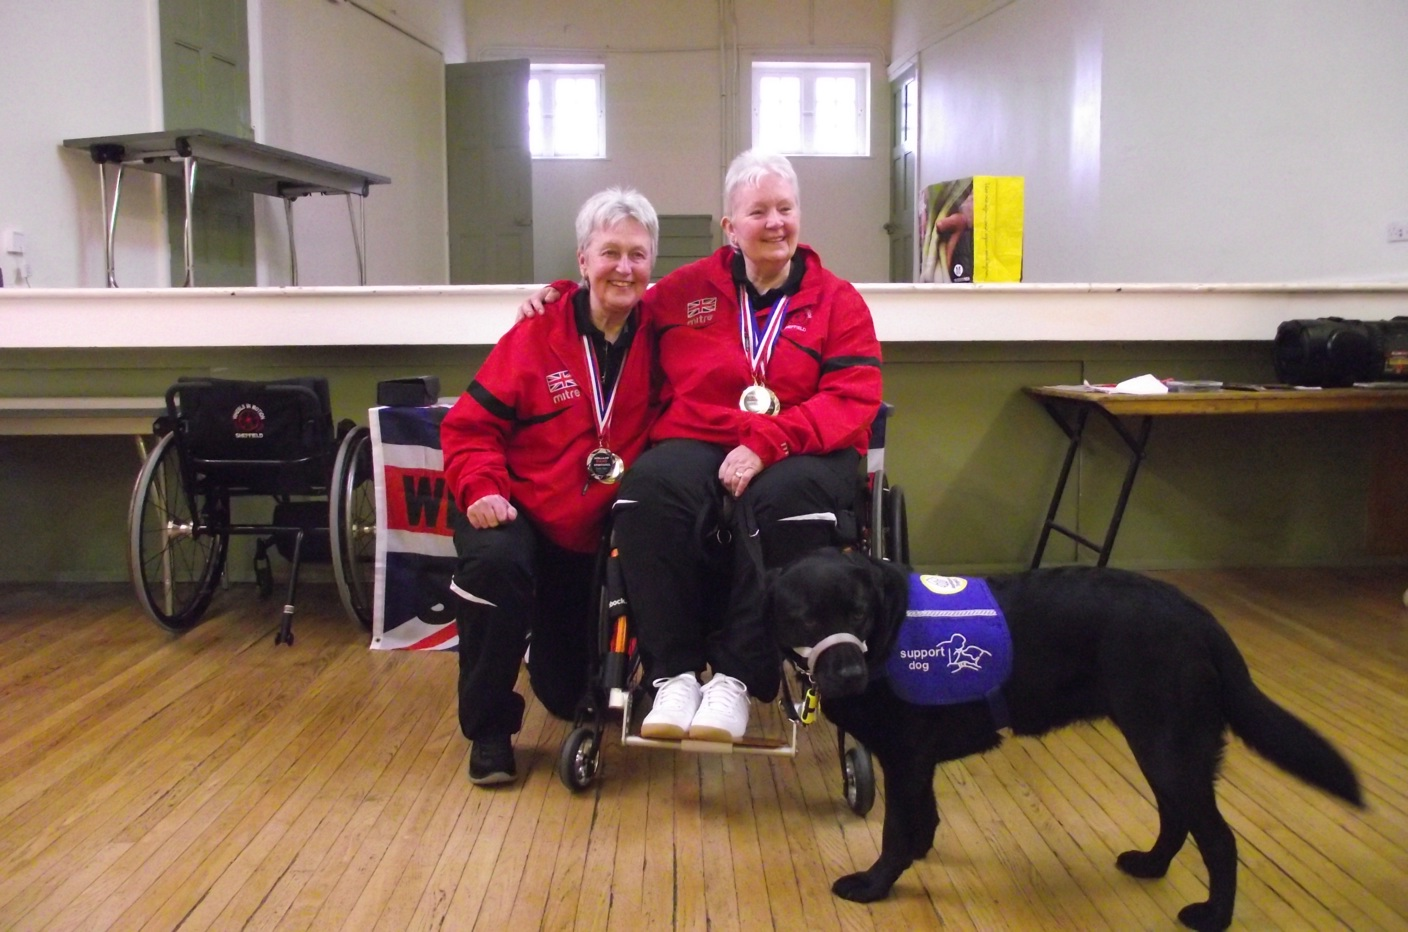 Bobbie, her partner and assistance dog